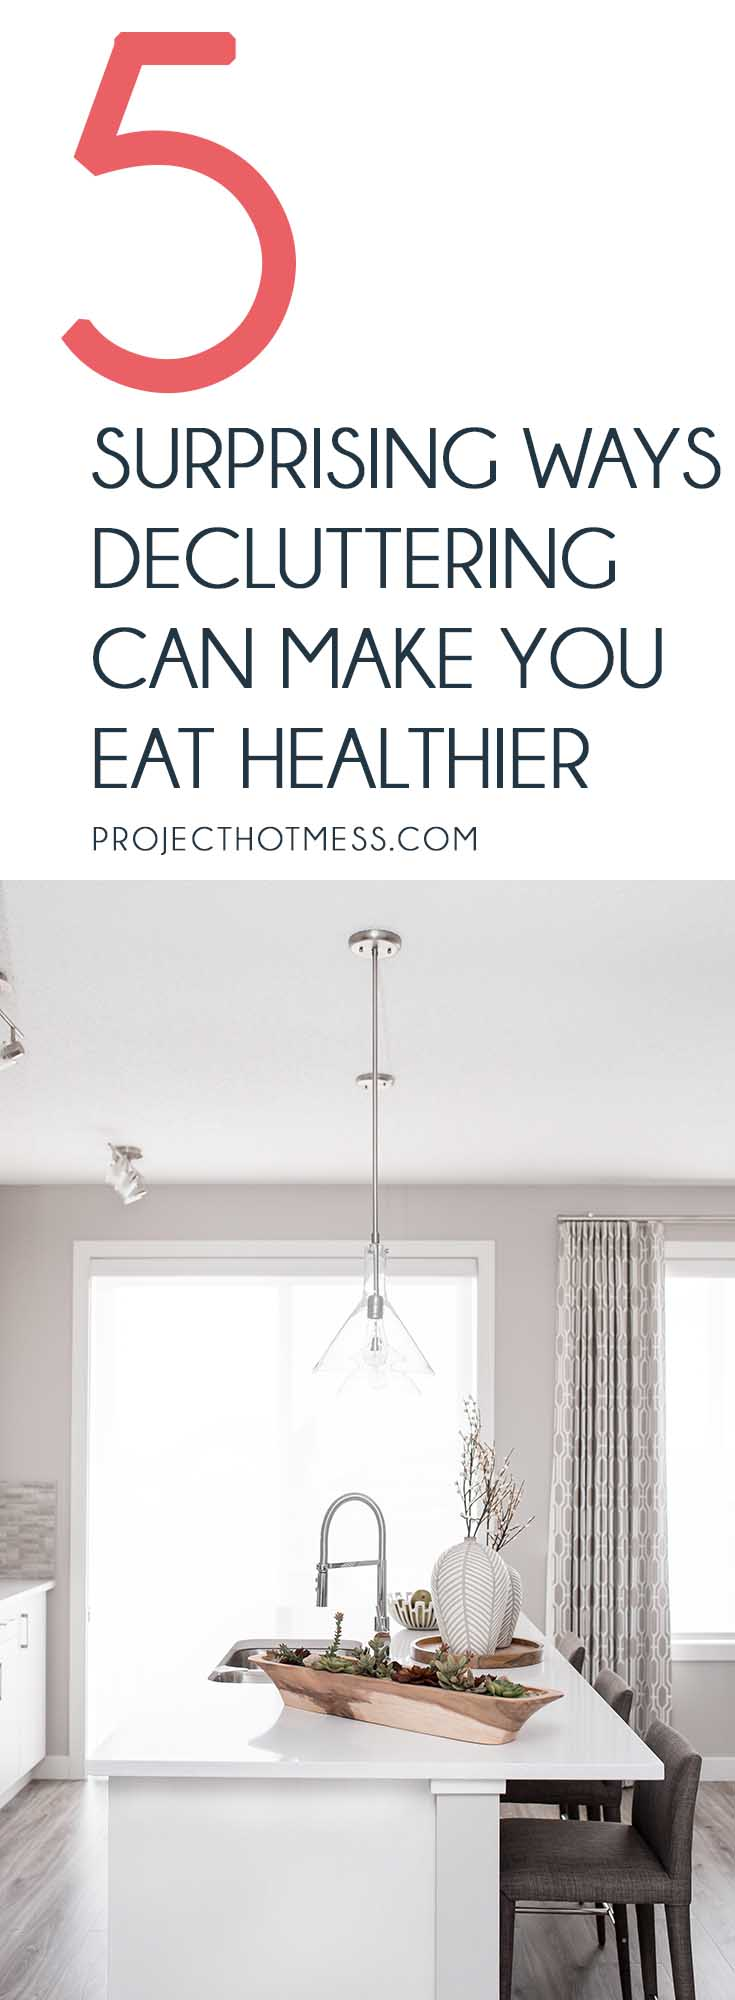 Did you know that decluttering can make you eat healthier? That's right, the way you treat your home reflects how you treat your body and the food you eat. Healthy Eating | Decluttering | Declutter Your Home | Eat Healthy | Healthy Mindset | Health Goals